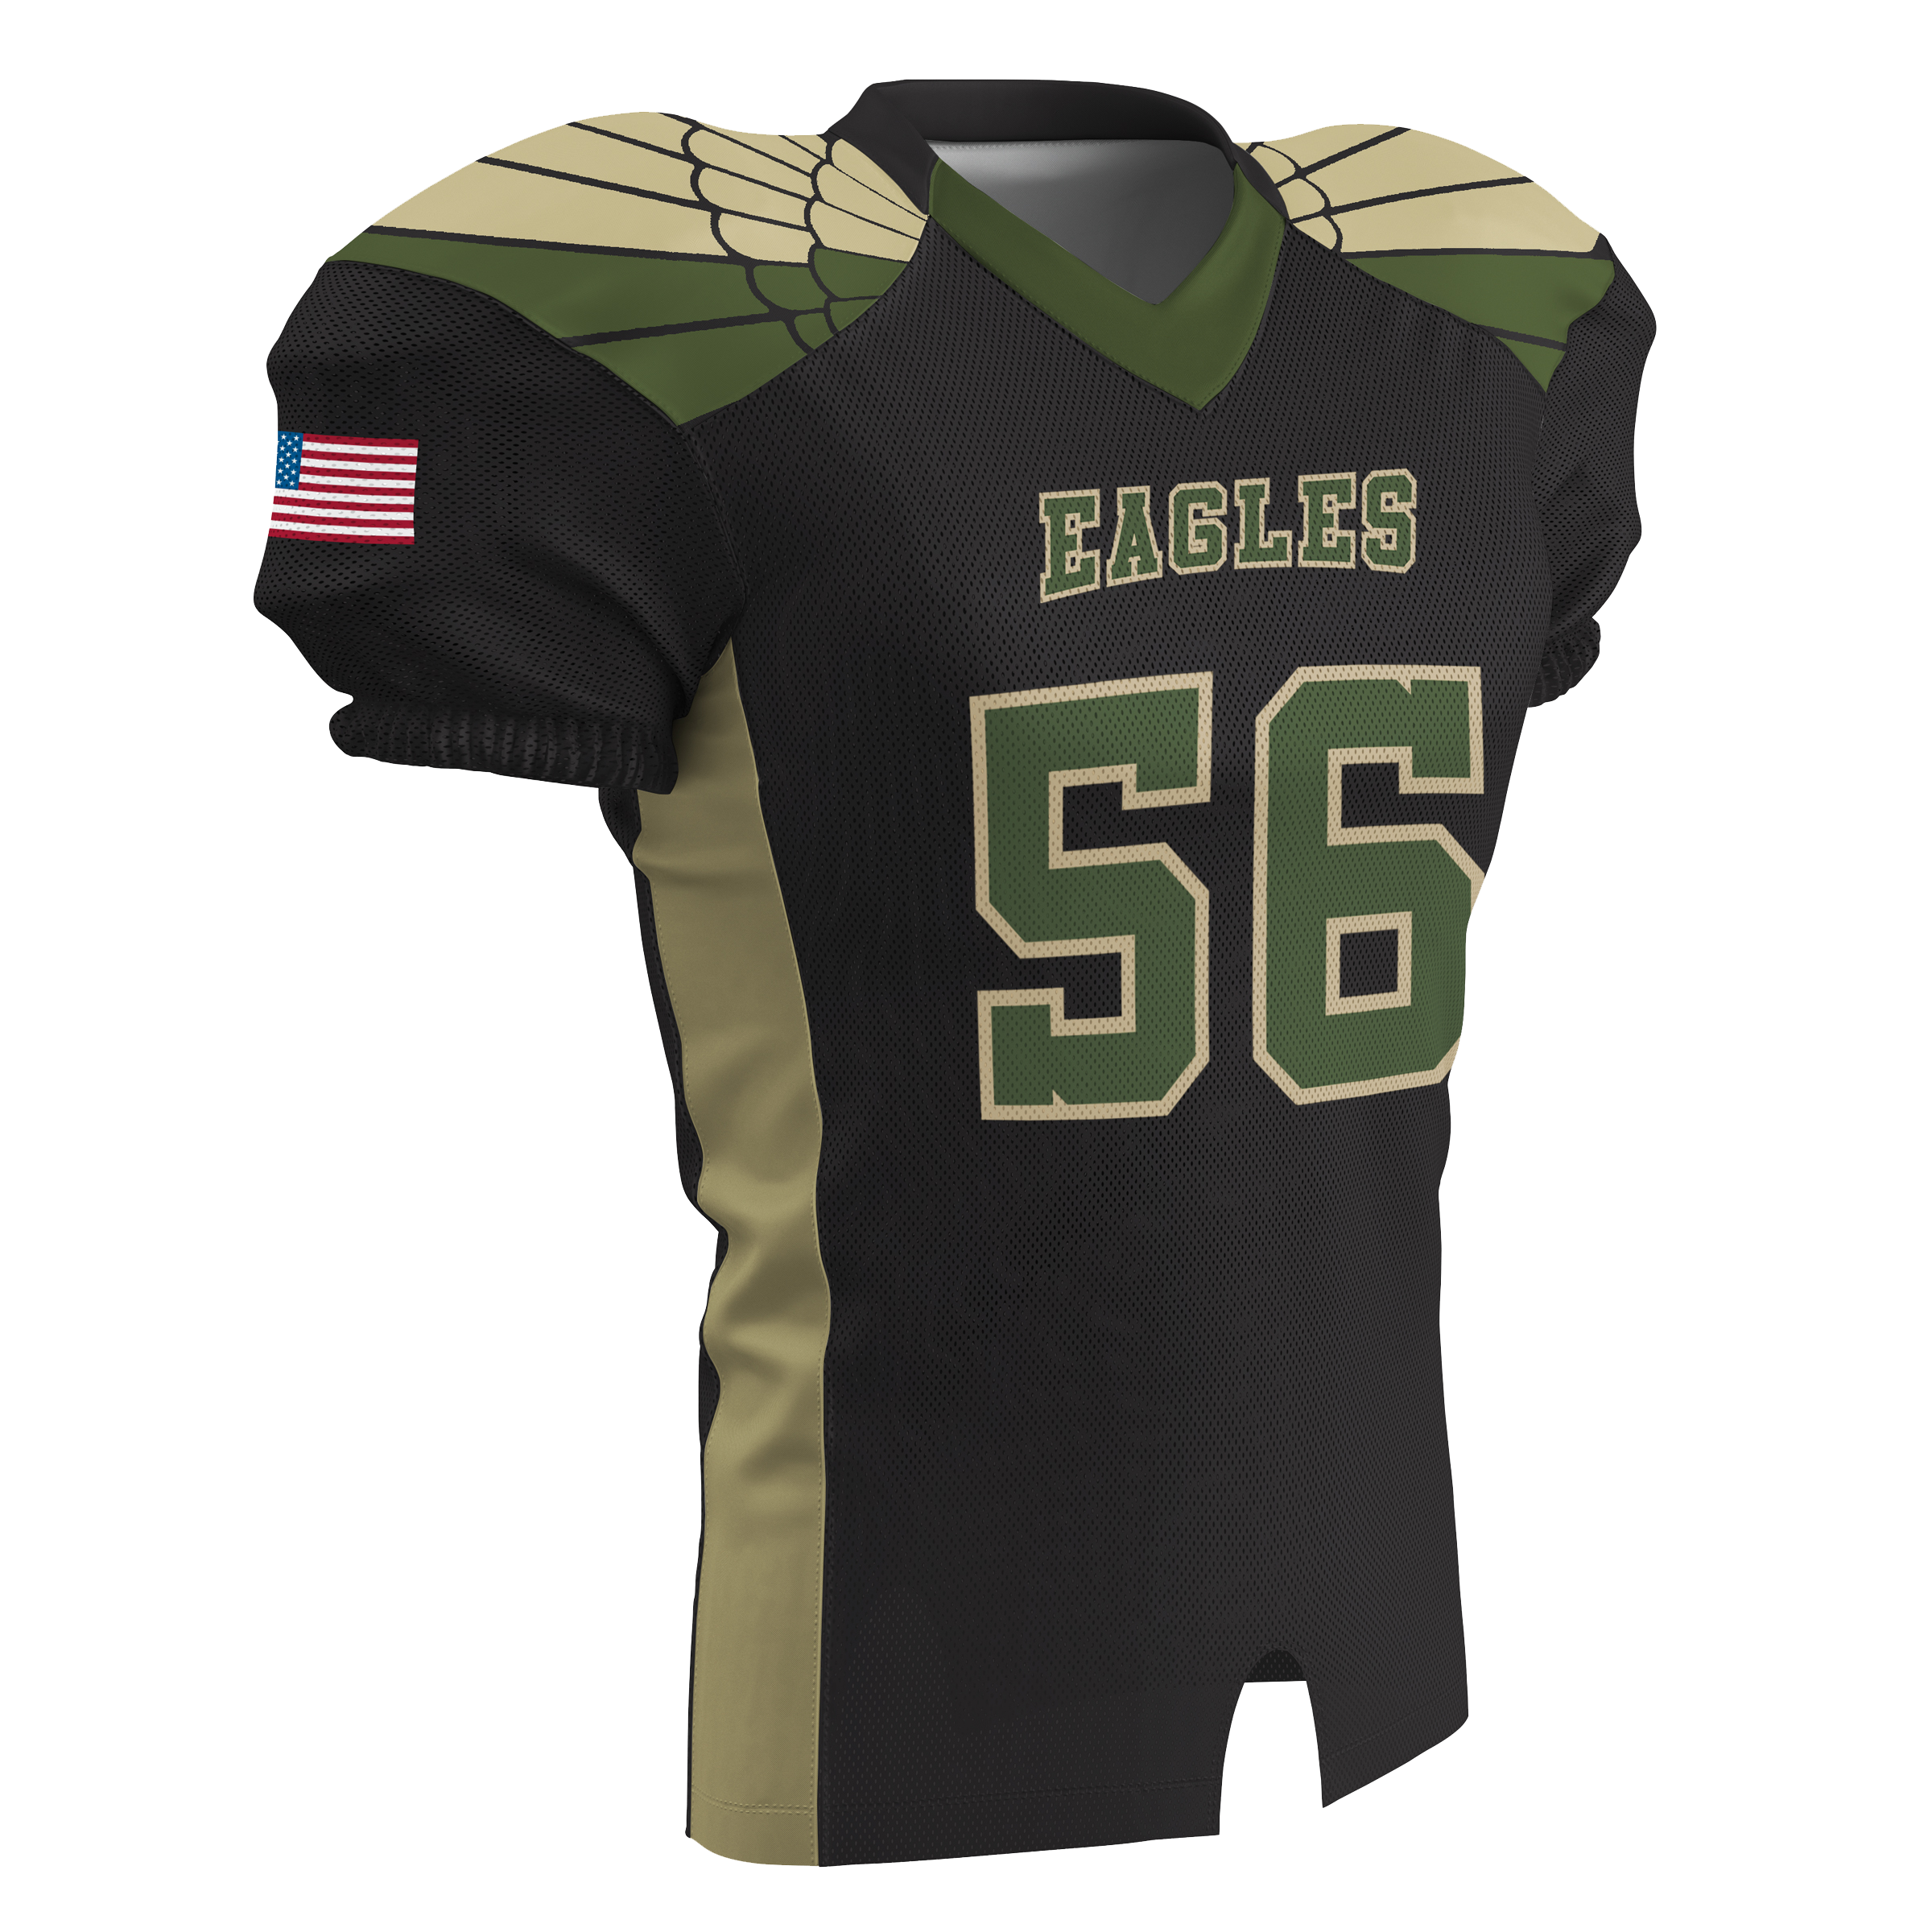 collegiate cut sublimated football jersey